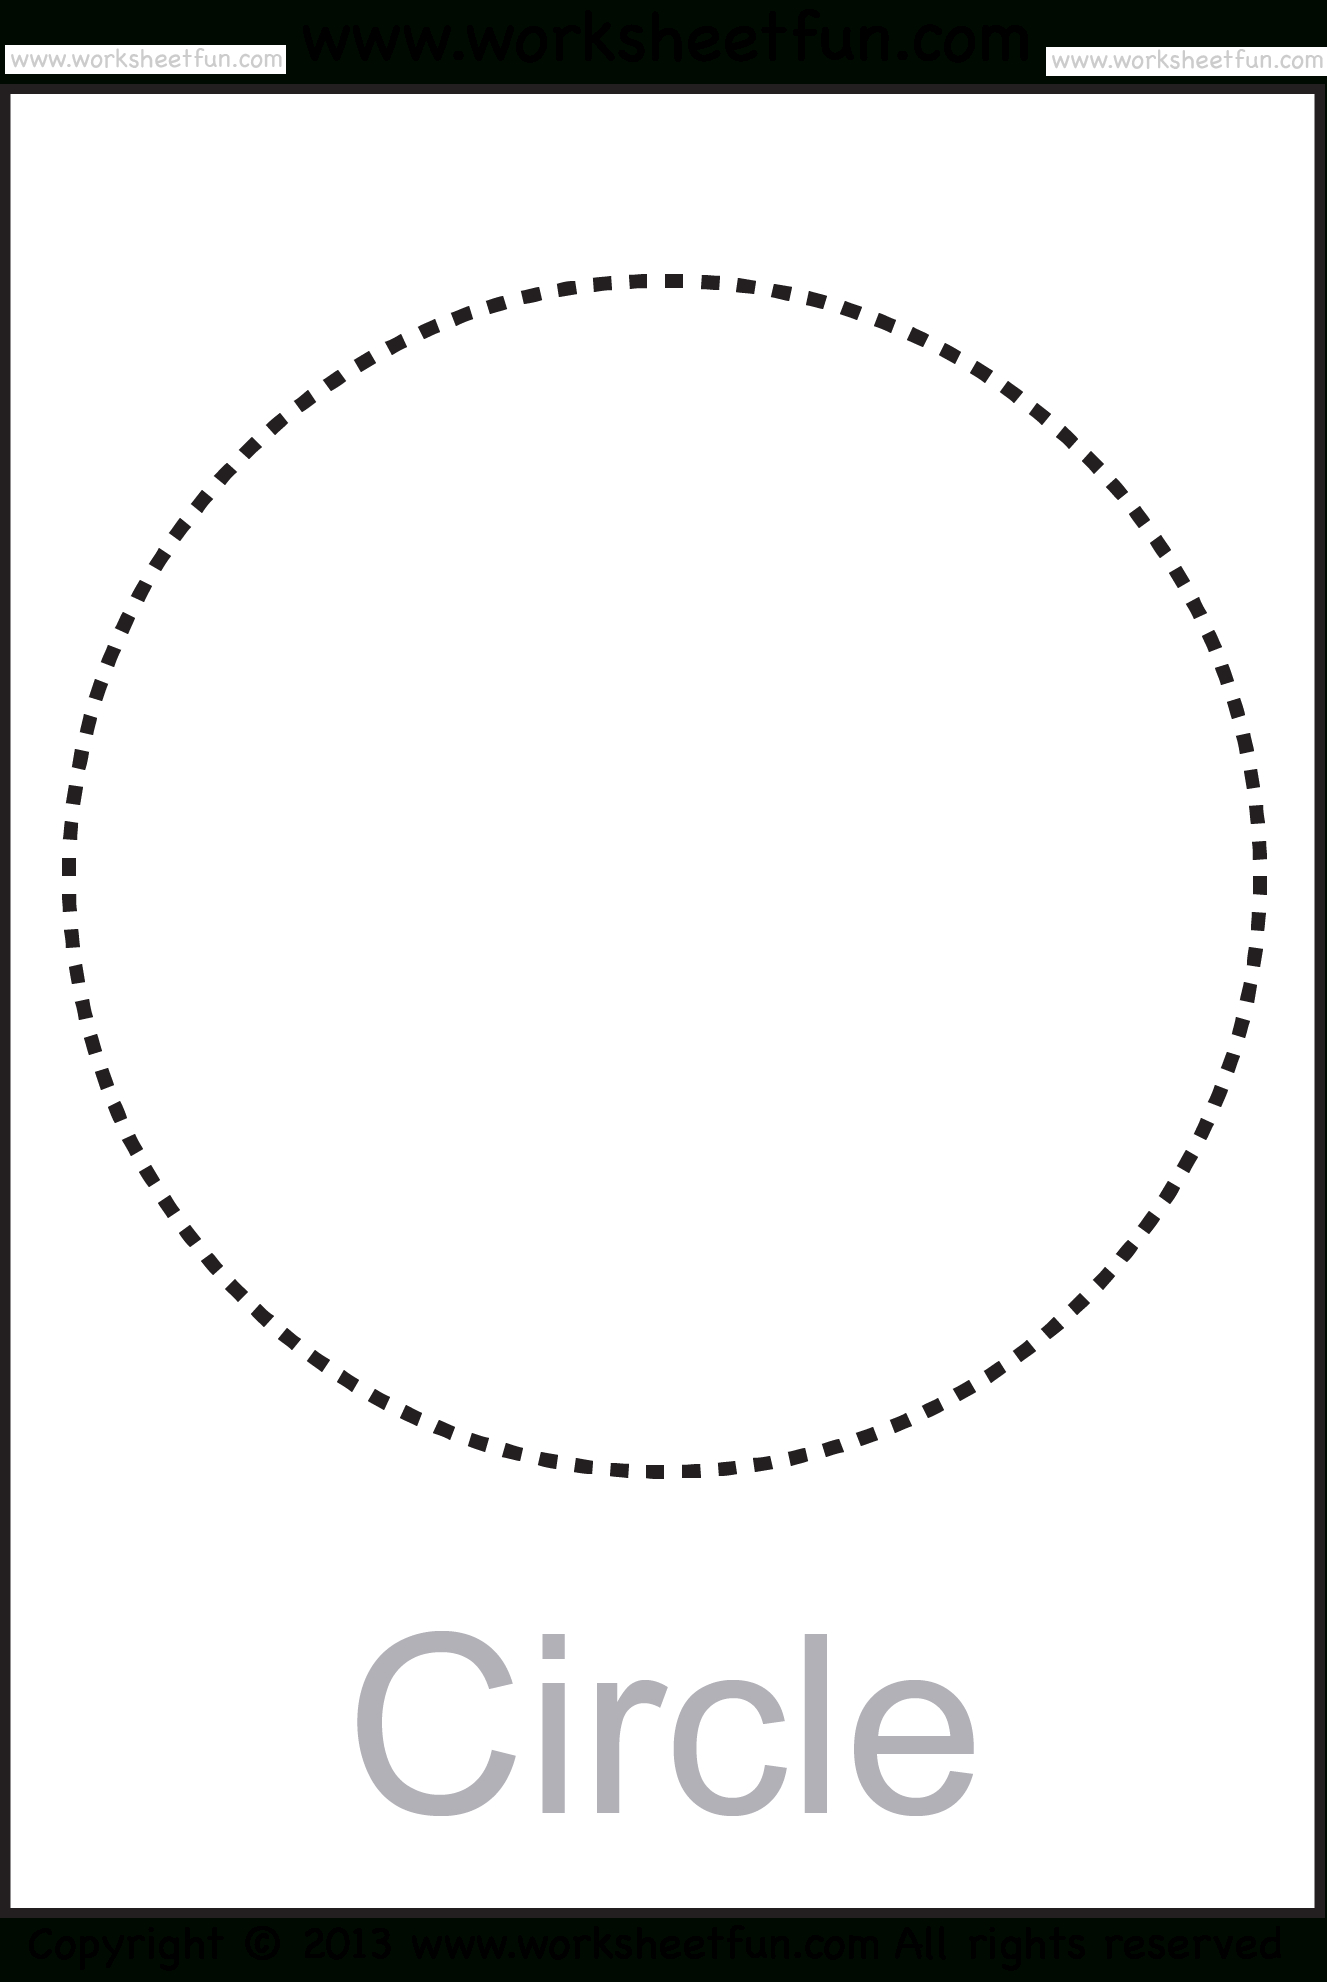 Shapes – Circle, Triangle, Square, Rectangle, Rhombus, Oval – Six - Large Printable Shapes Free